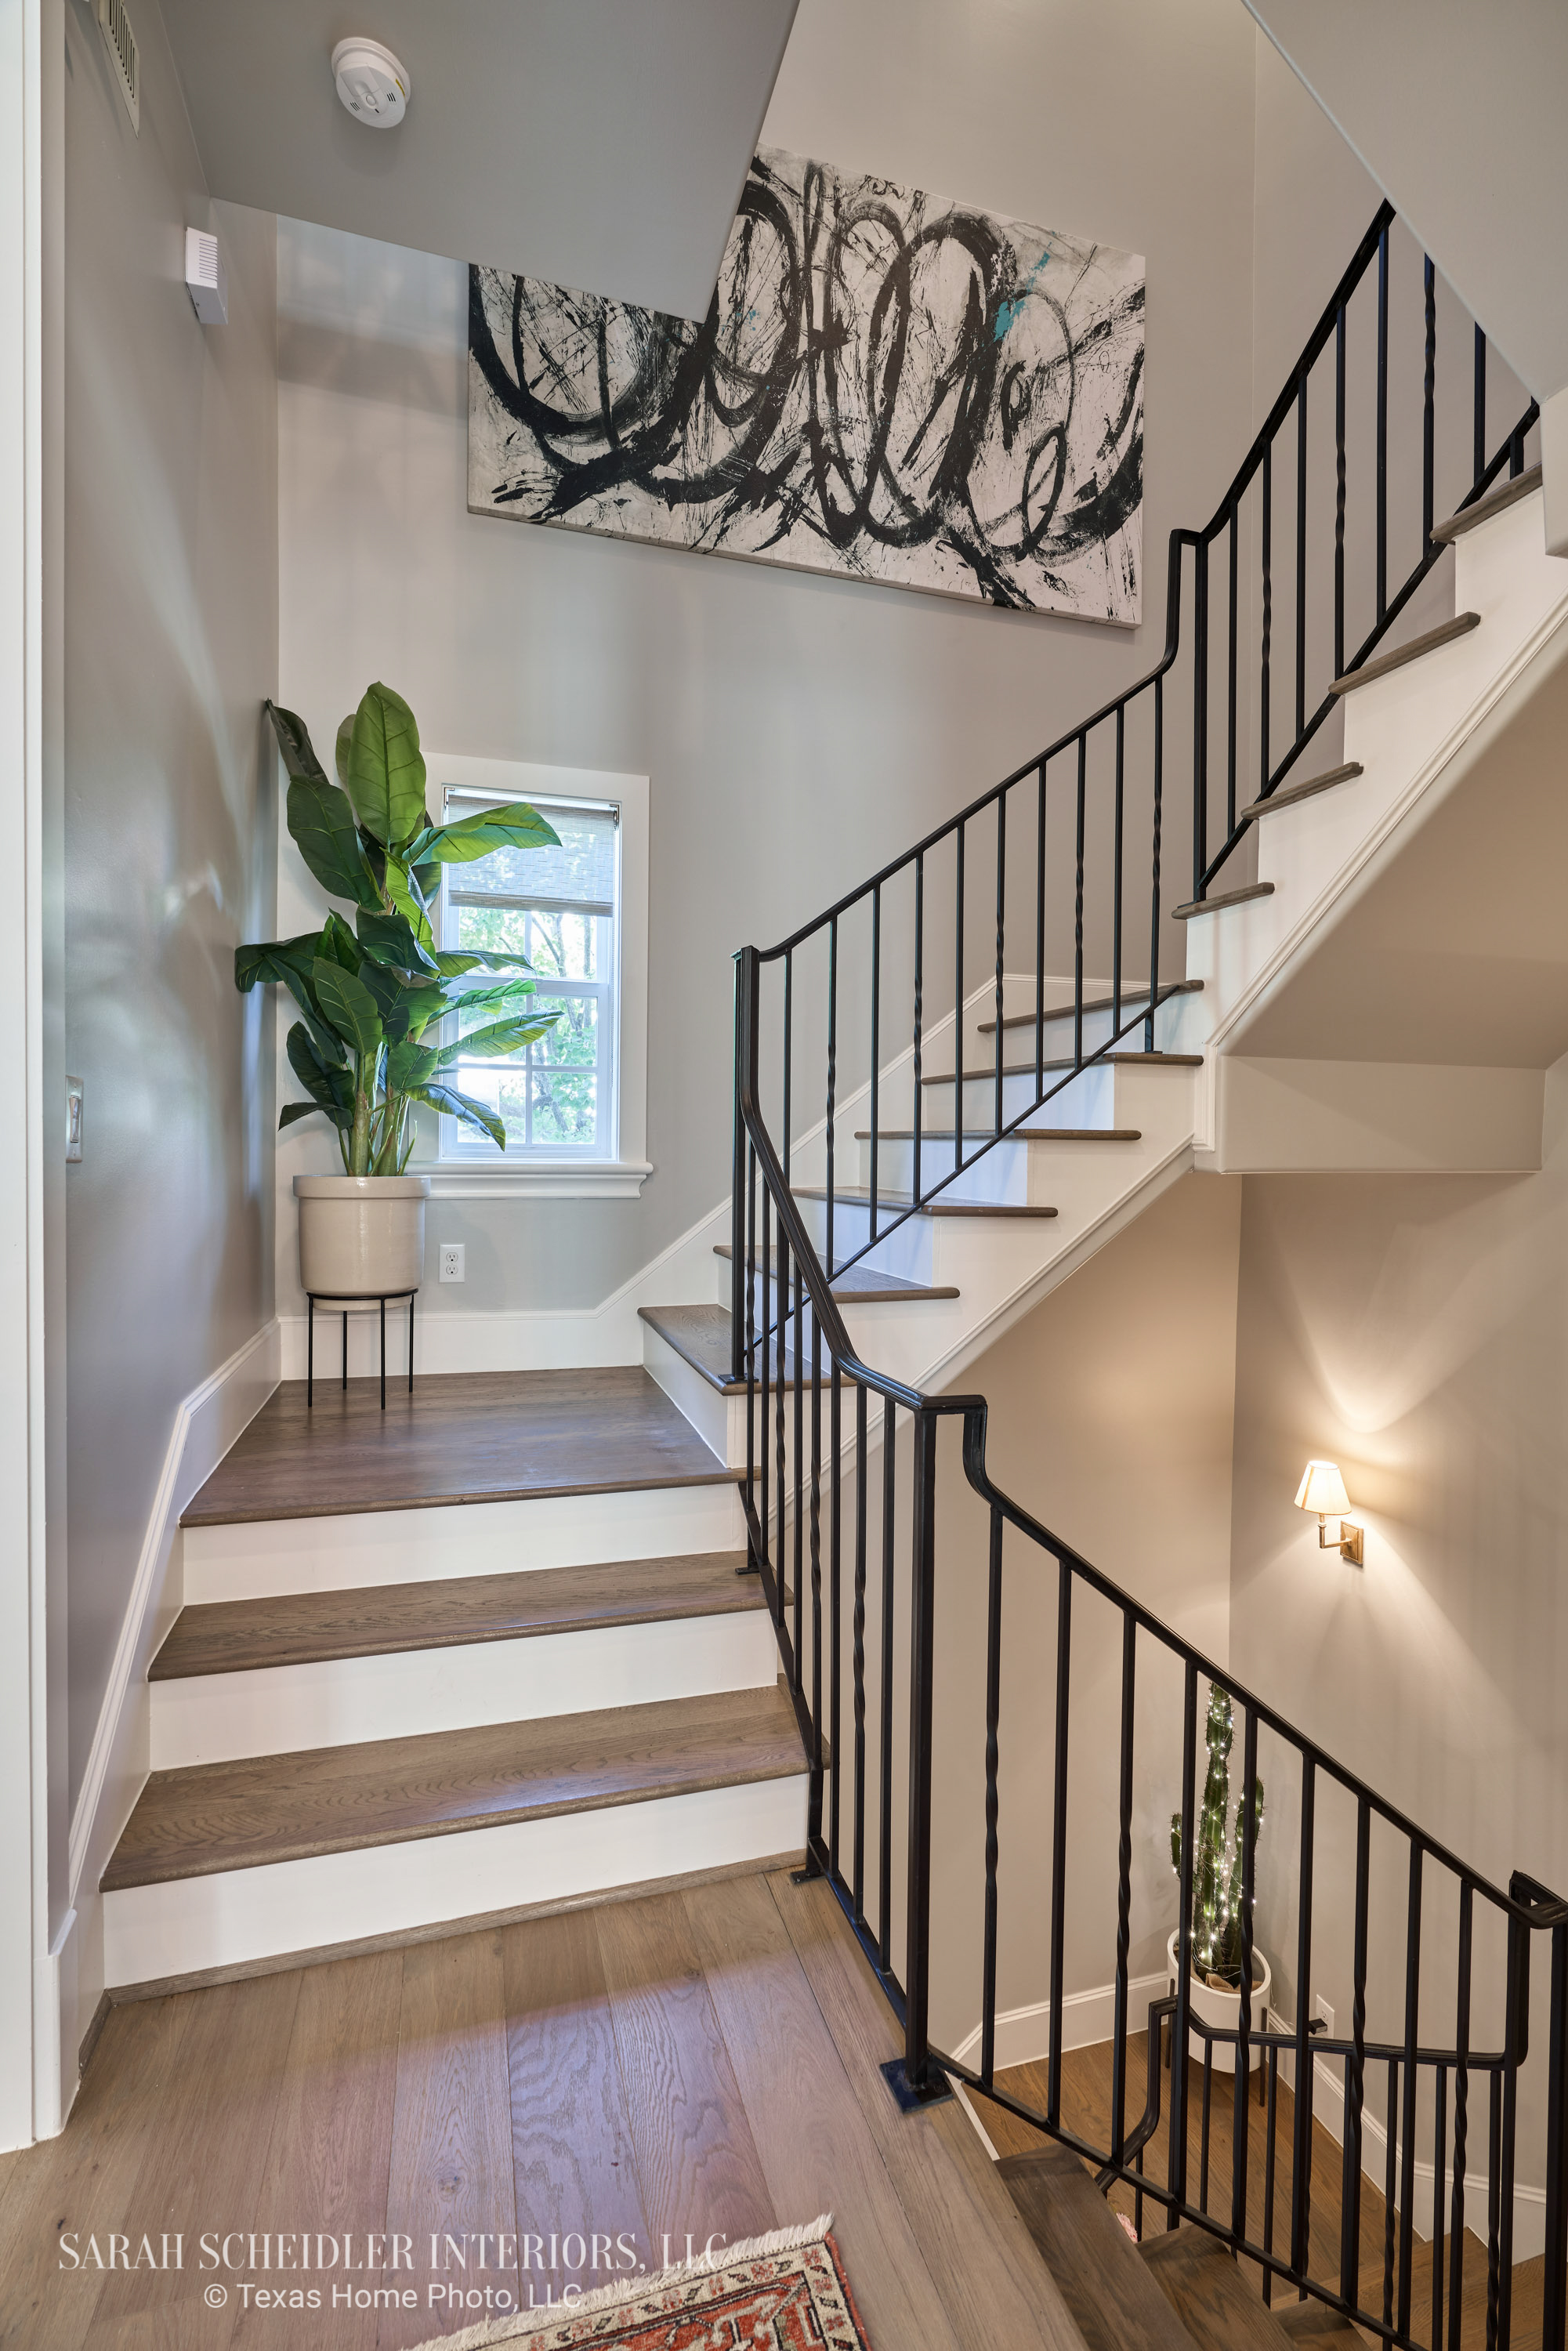 Hallway Design with Large-Scale Art and Greenery